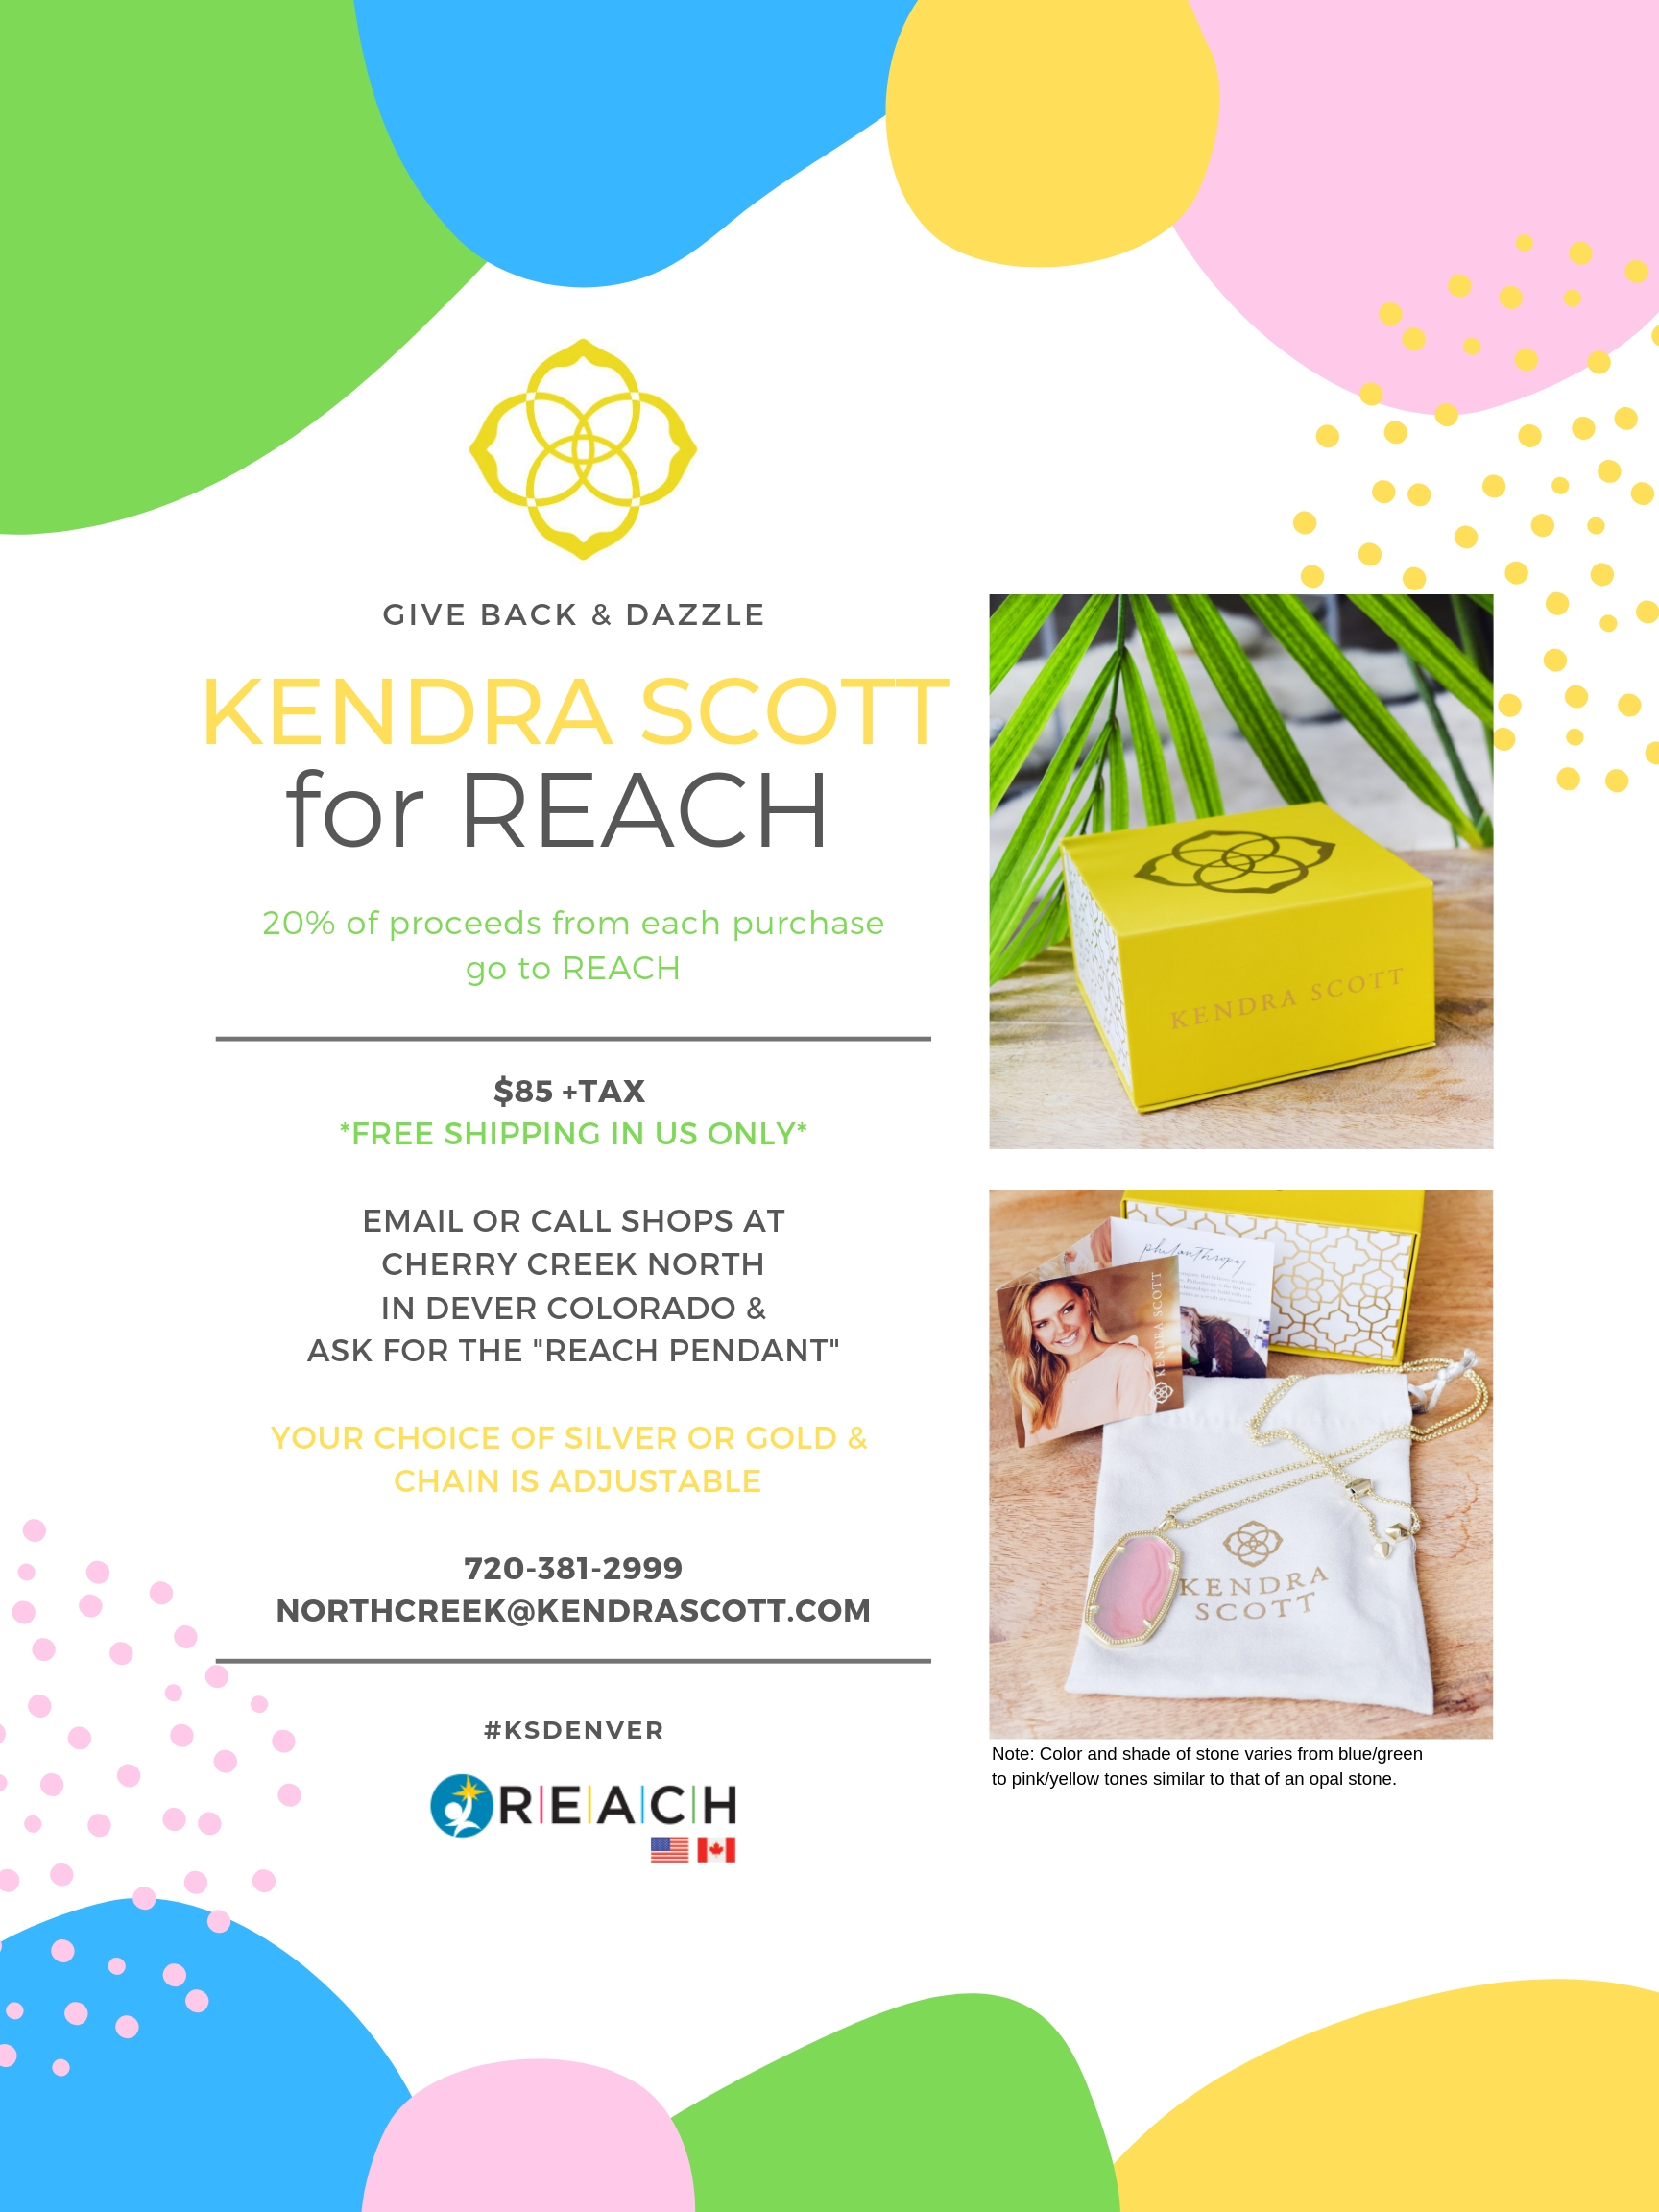 KendraScottForREACH2019.jpg